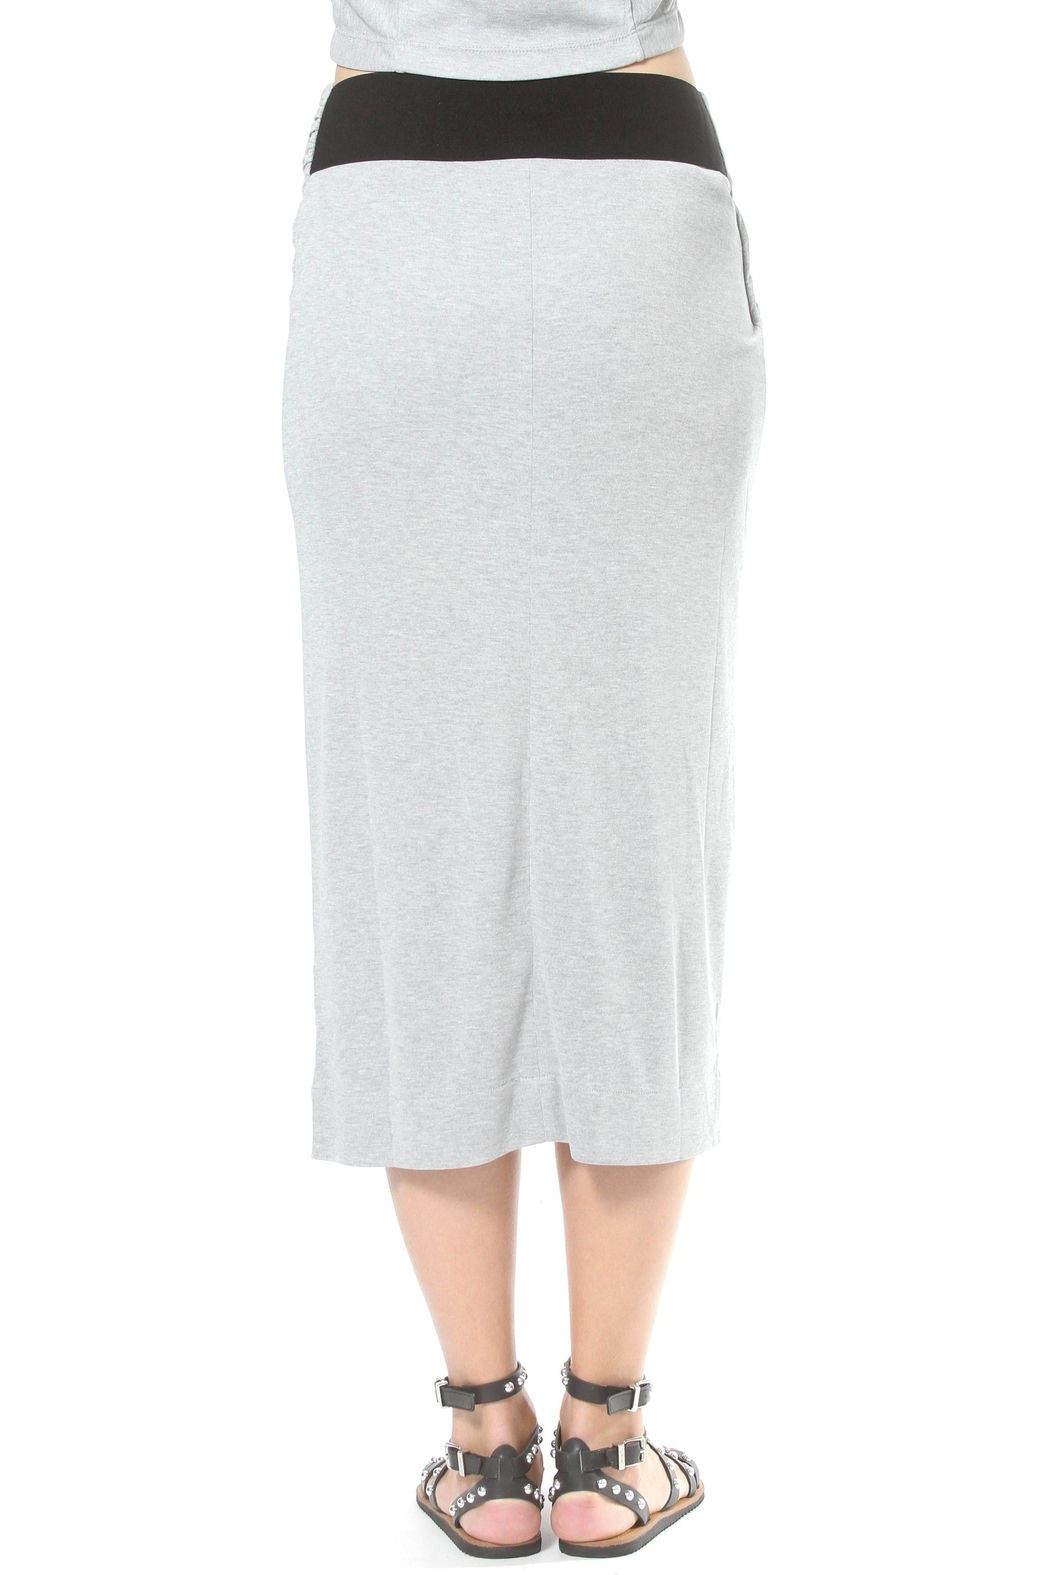 Madonna & Co Knit Midi - Side Cropped Image